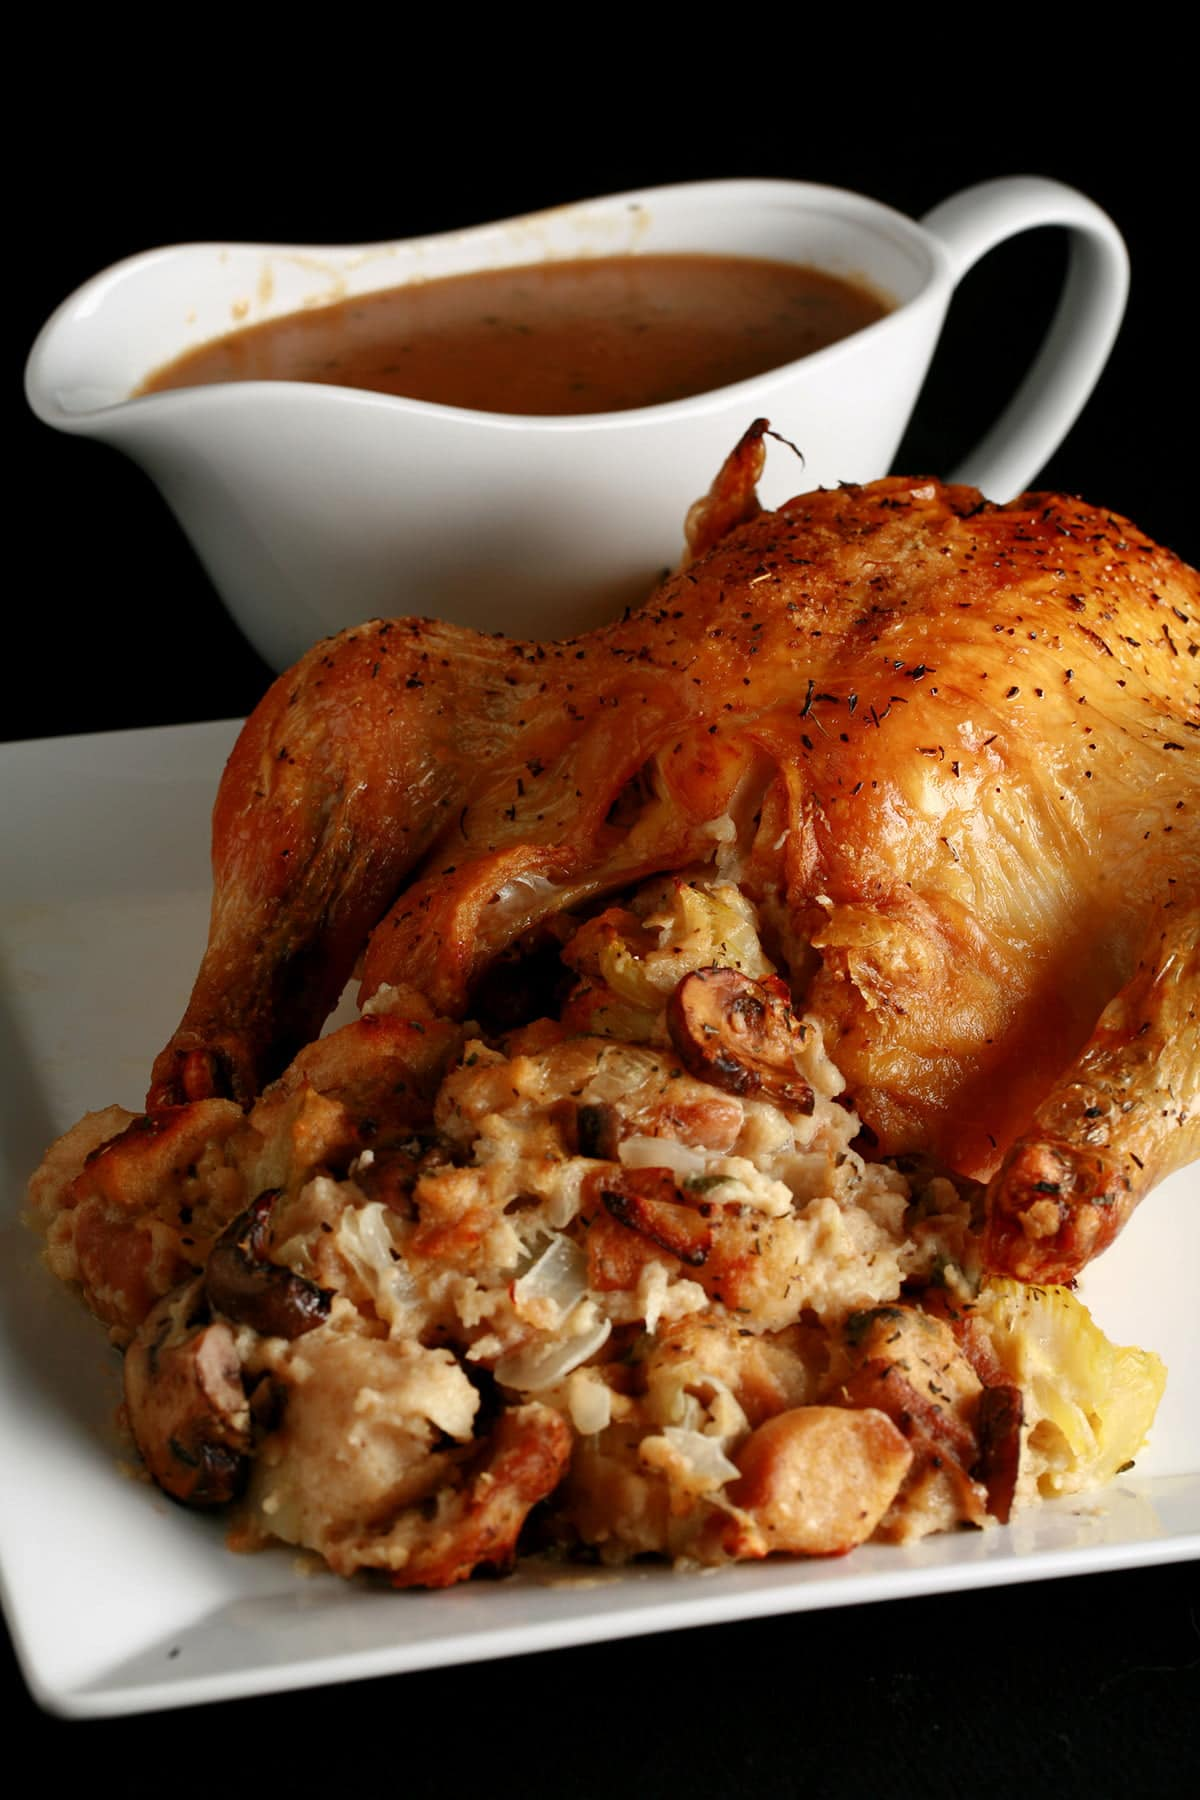 Close up image of a roasted turkey, with an abundance of stuffing visible. It is on a white plate, and there is a bowl of gravy next to it.